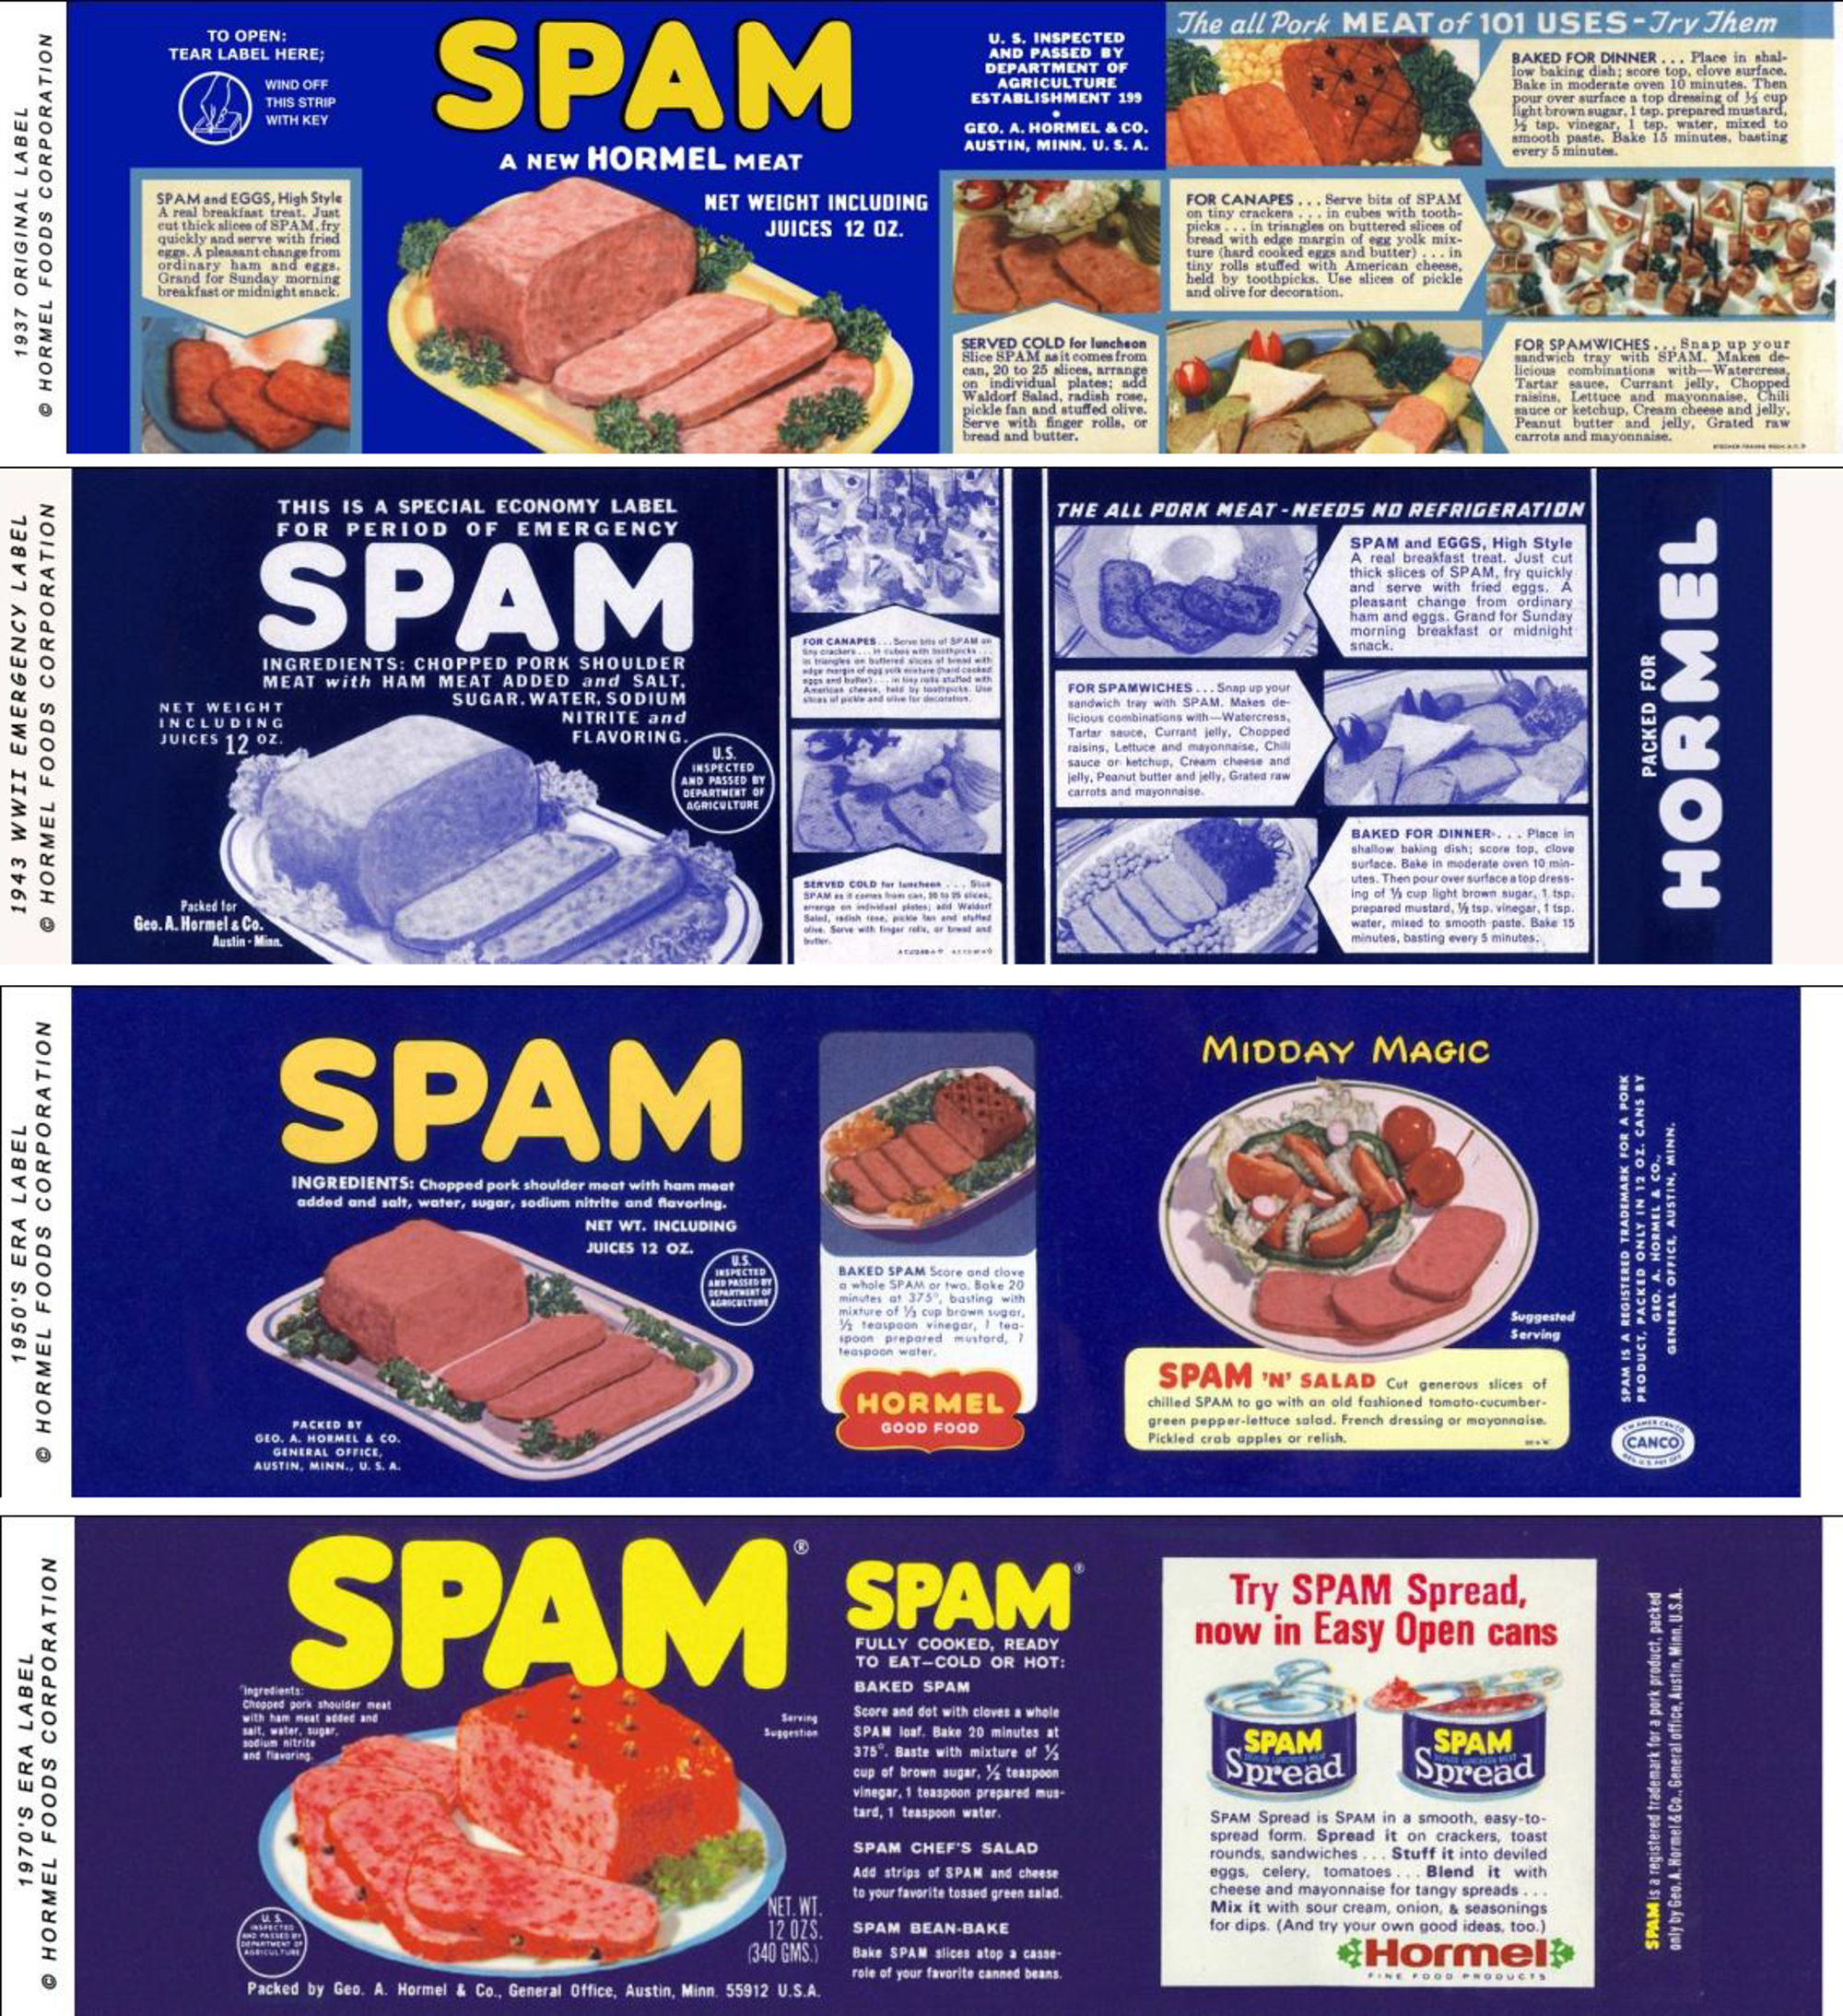 Spam was first marketed in 1937 as an inexpensive and versatile canned meat that could be prepared quickly and with little effort. Image obtained from eater.com.